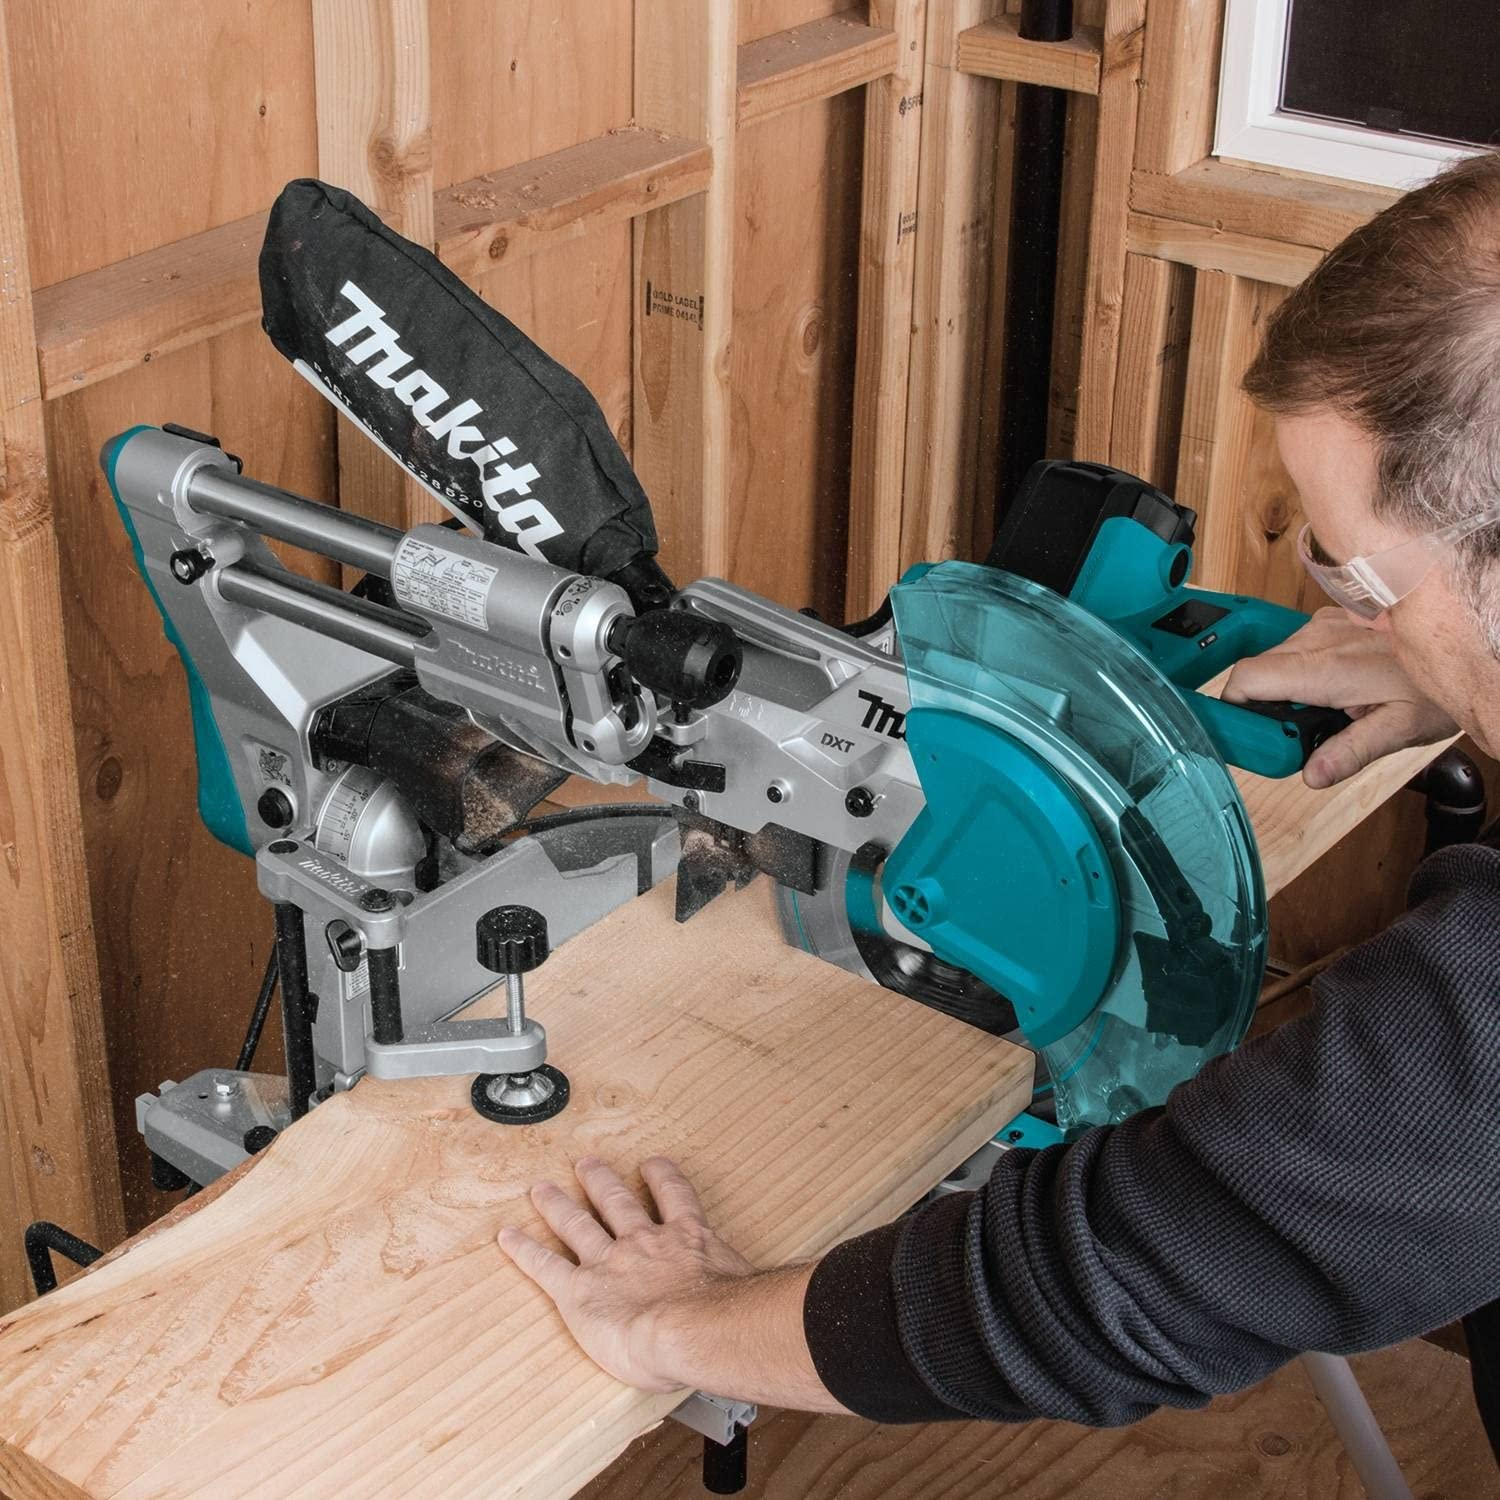 Cutting wood with a sliding compound miter saw